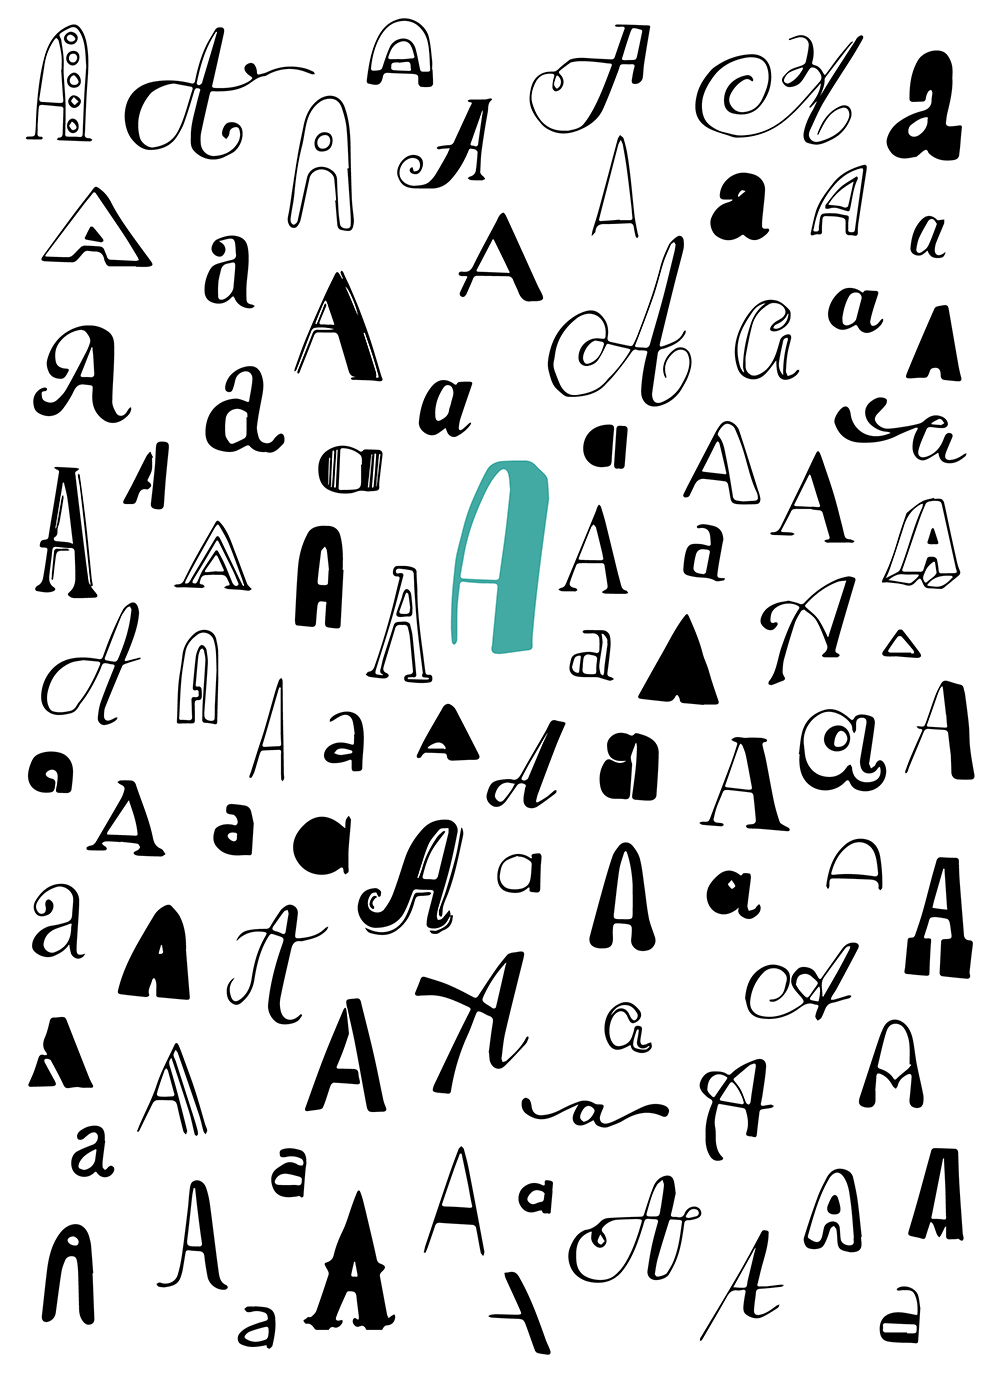 Alphabet_Exploration-01.jpg